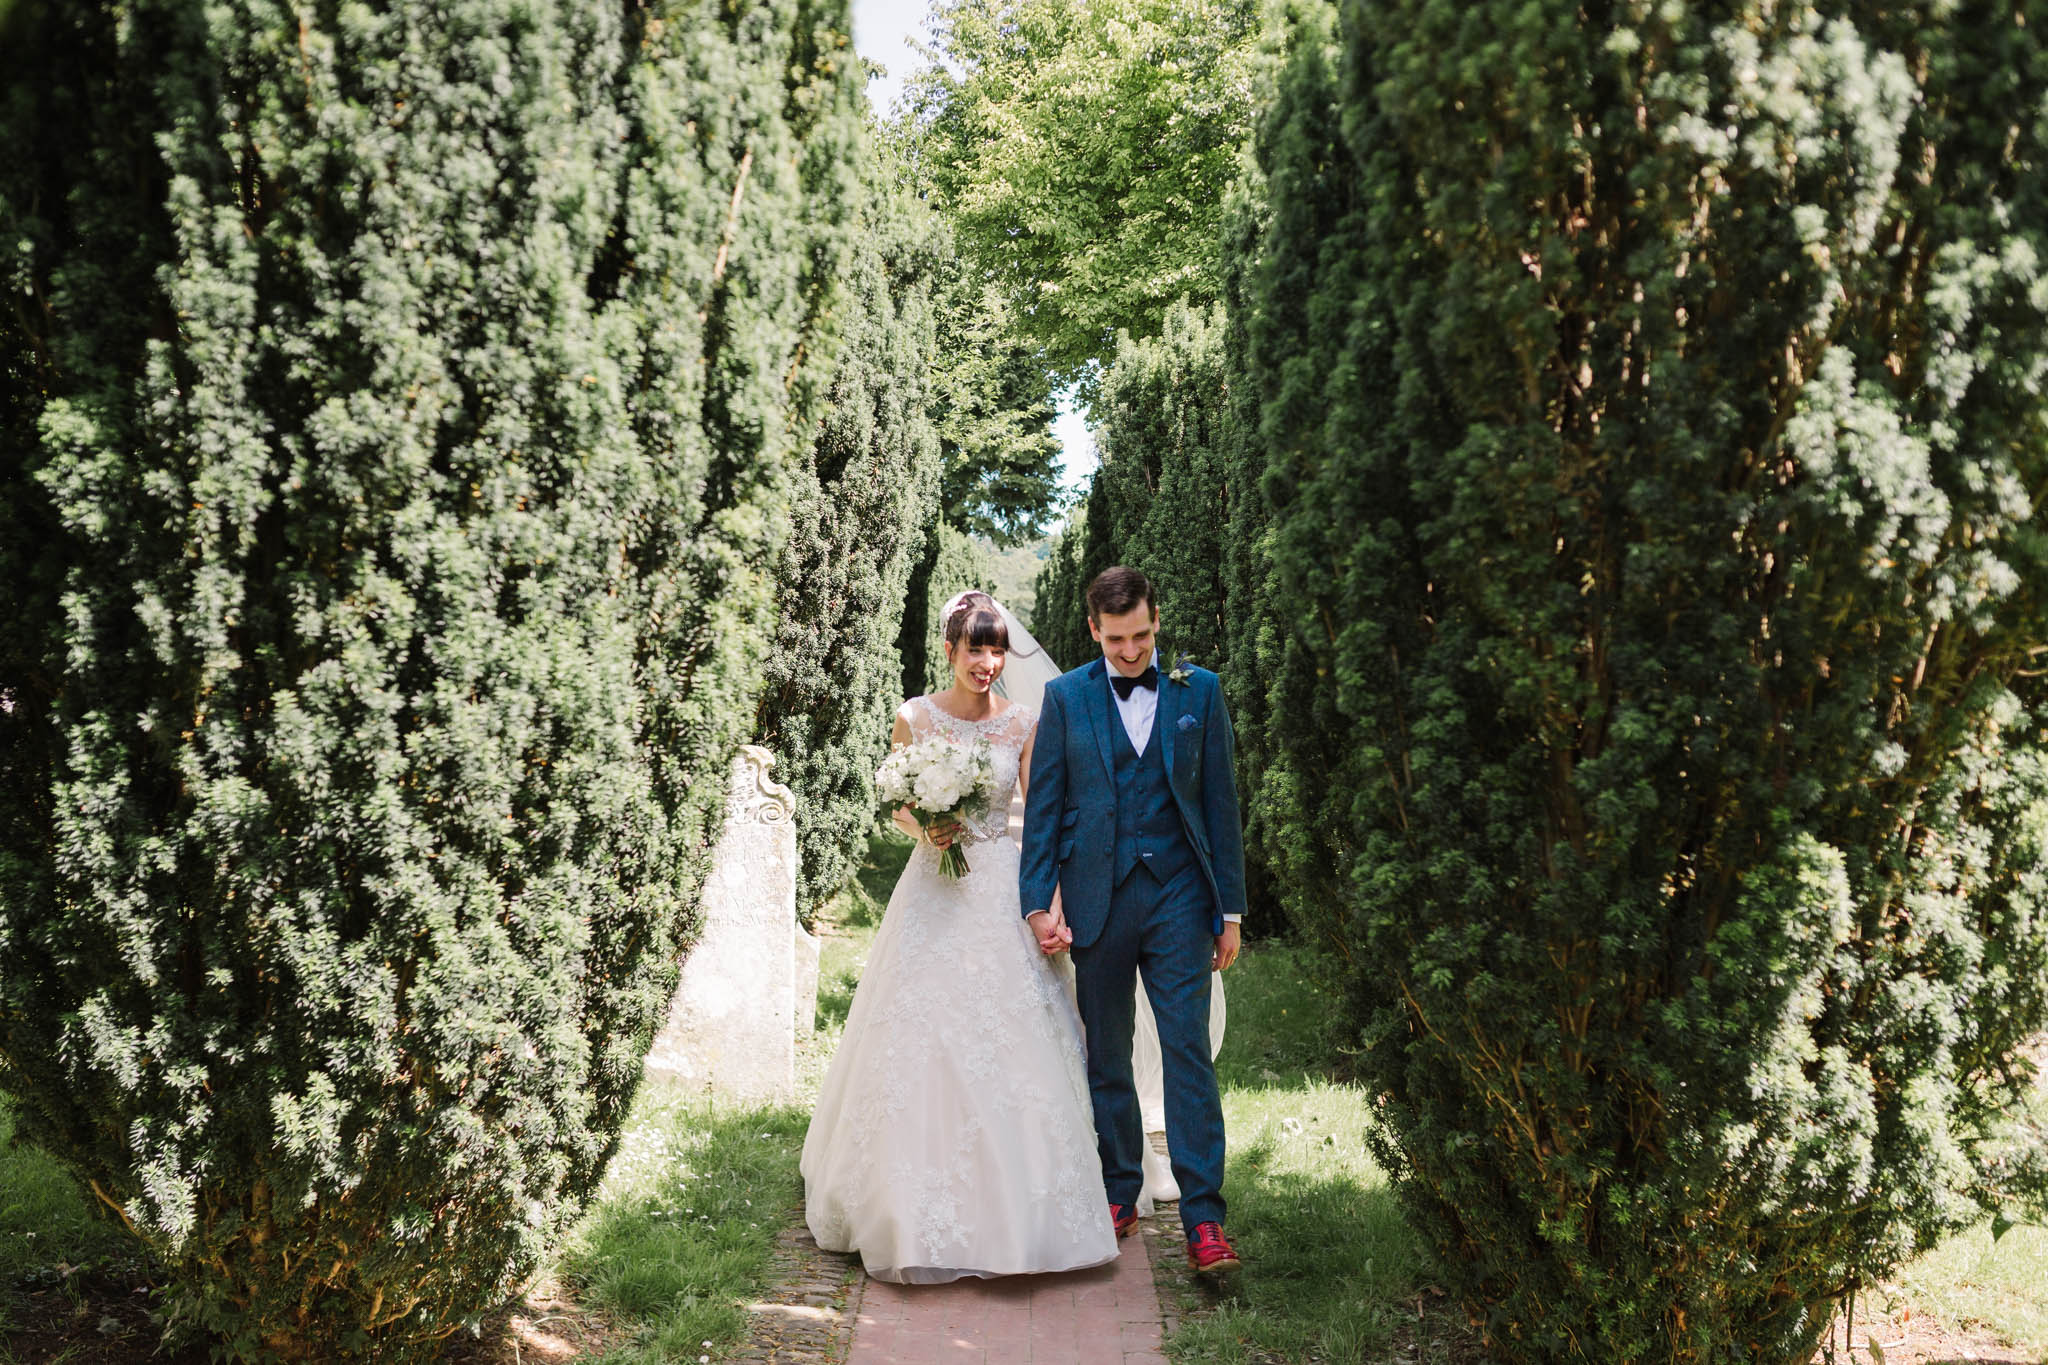 bride and groom walking down tree lined path